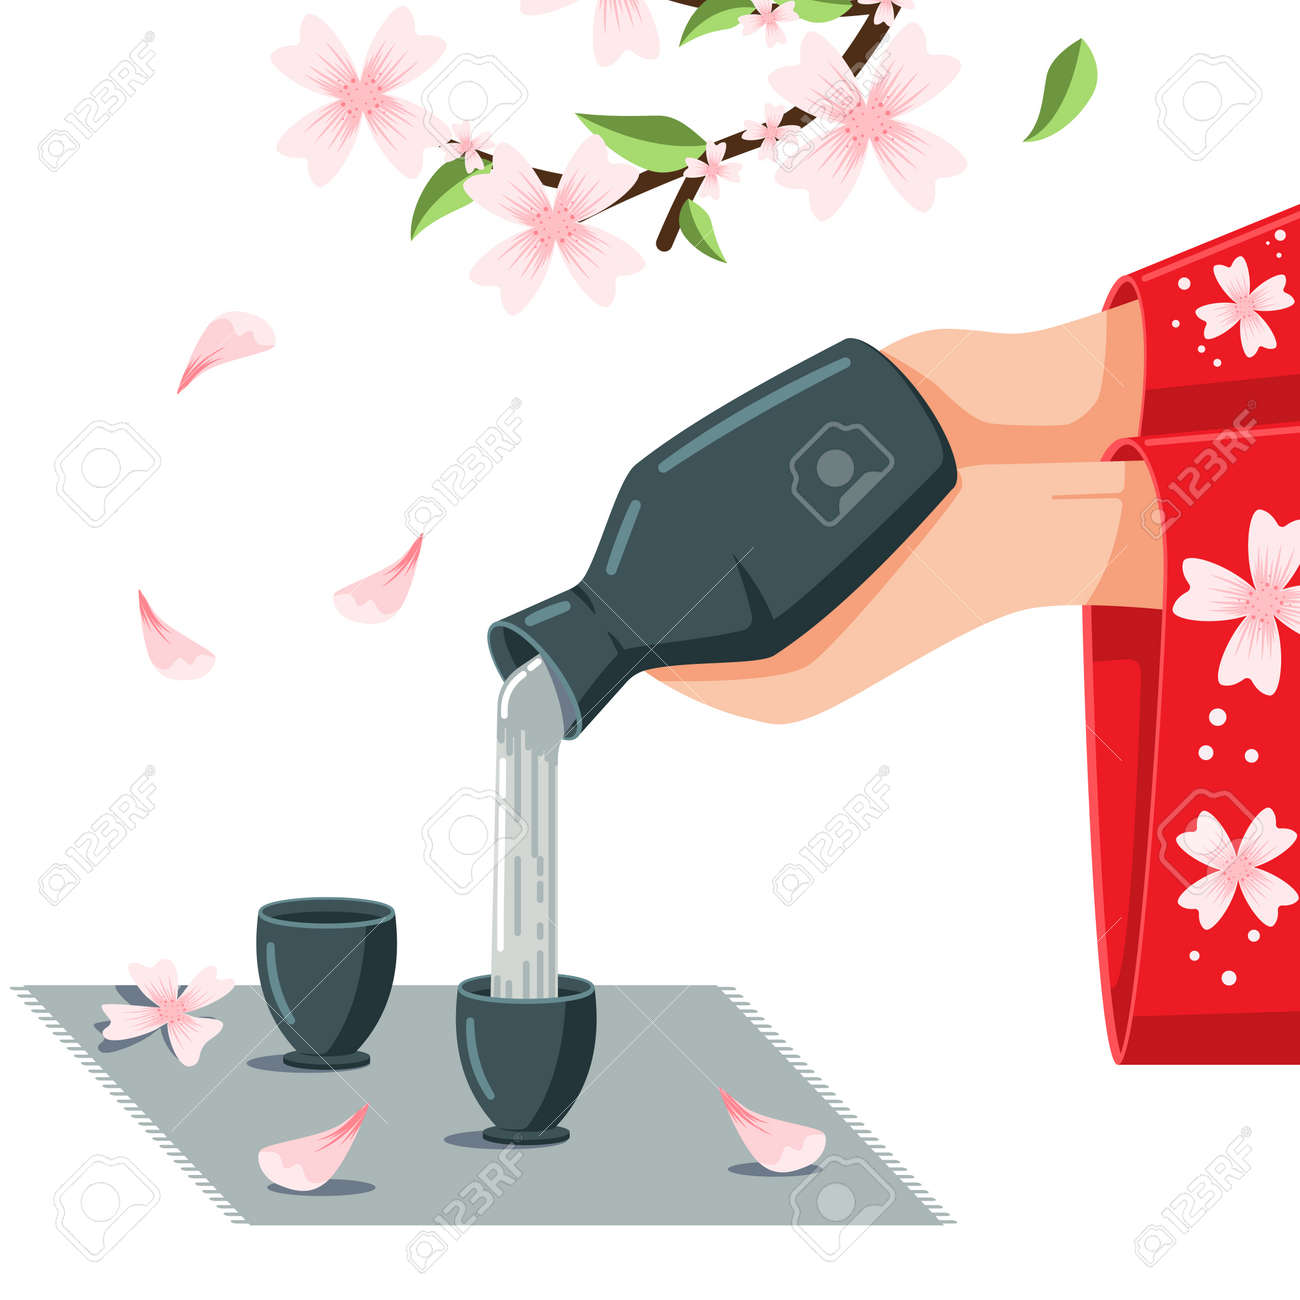 Sake vector cartoon illustration. Women's hands in kimono pouring Japanese alcoholic drink on the blossom cherry background. - 115569672